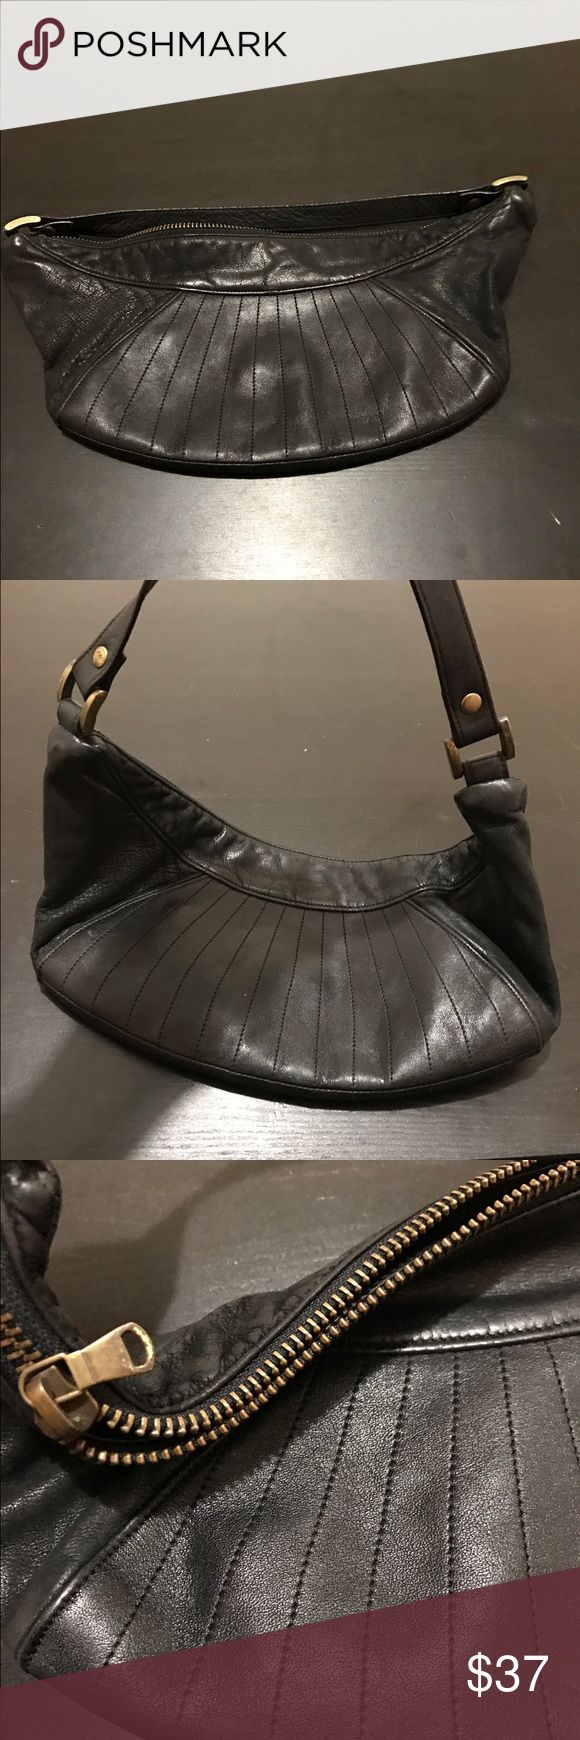 Vintage Armani exchange purse This is an adorable bag, leather trim. Clean interior. Very good condition, black, small. A/X Armani Exchange Bags Mini Bags